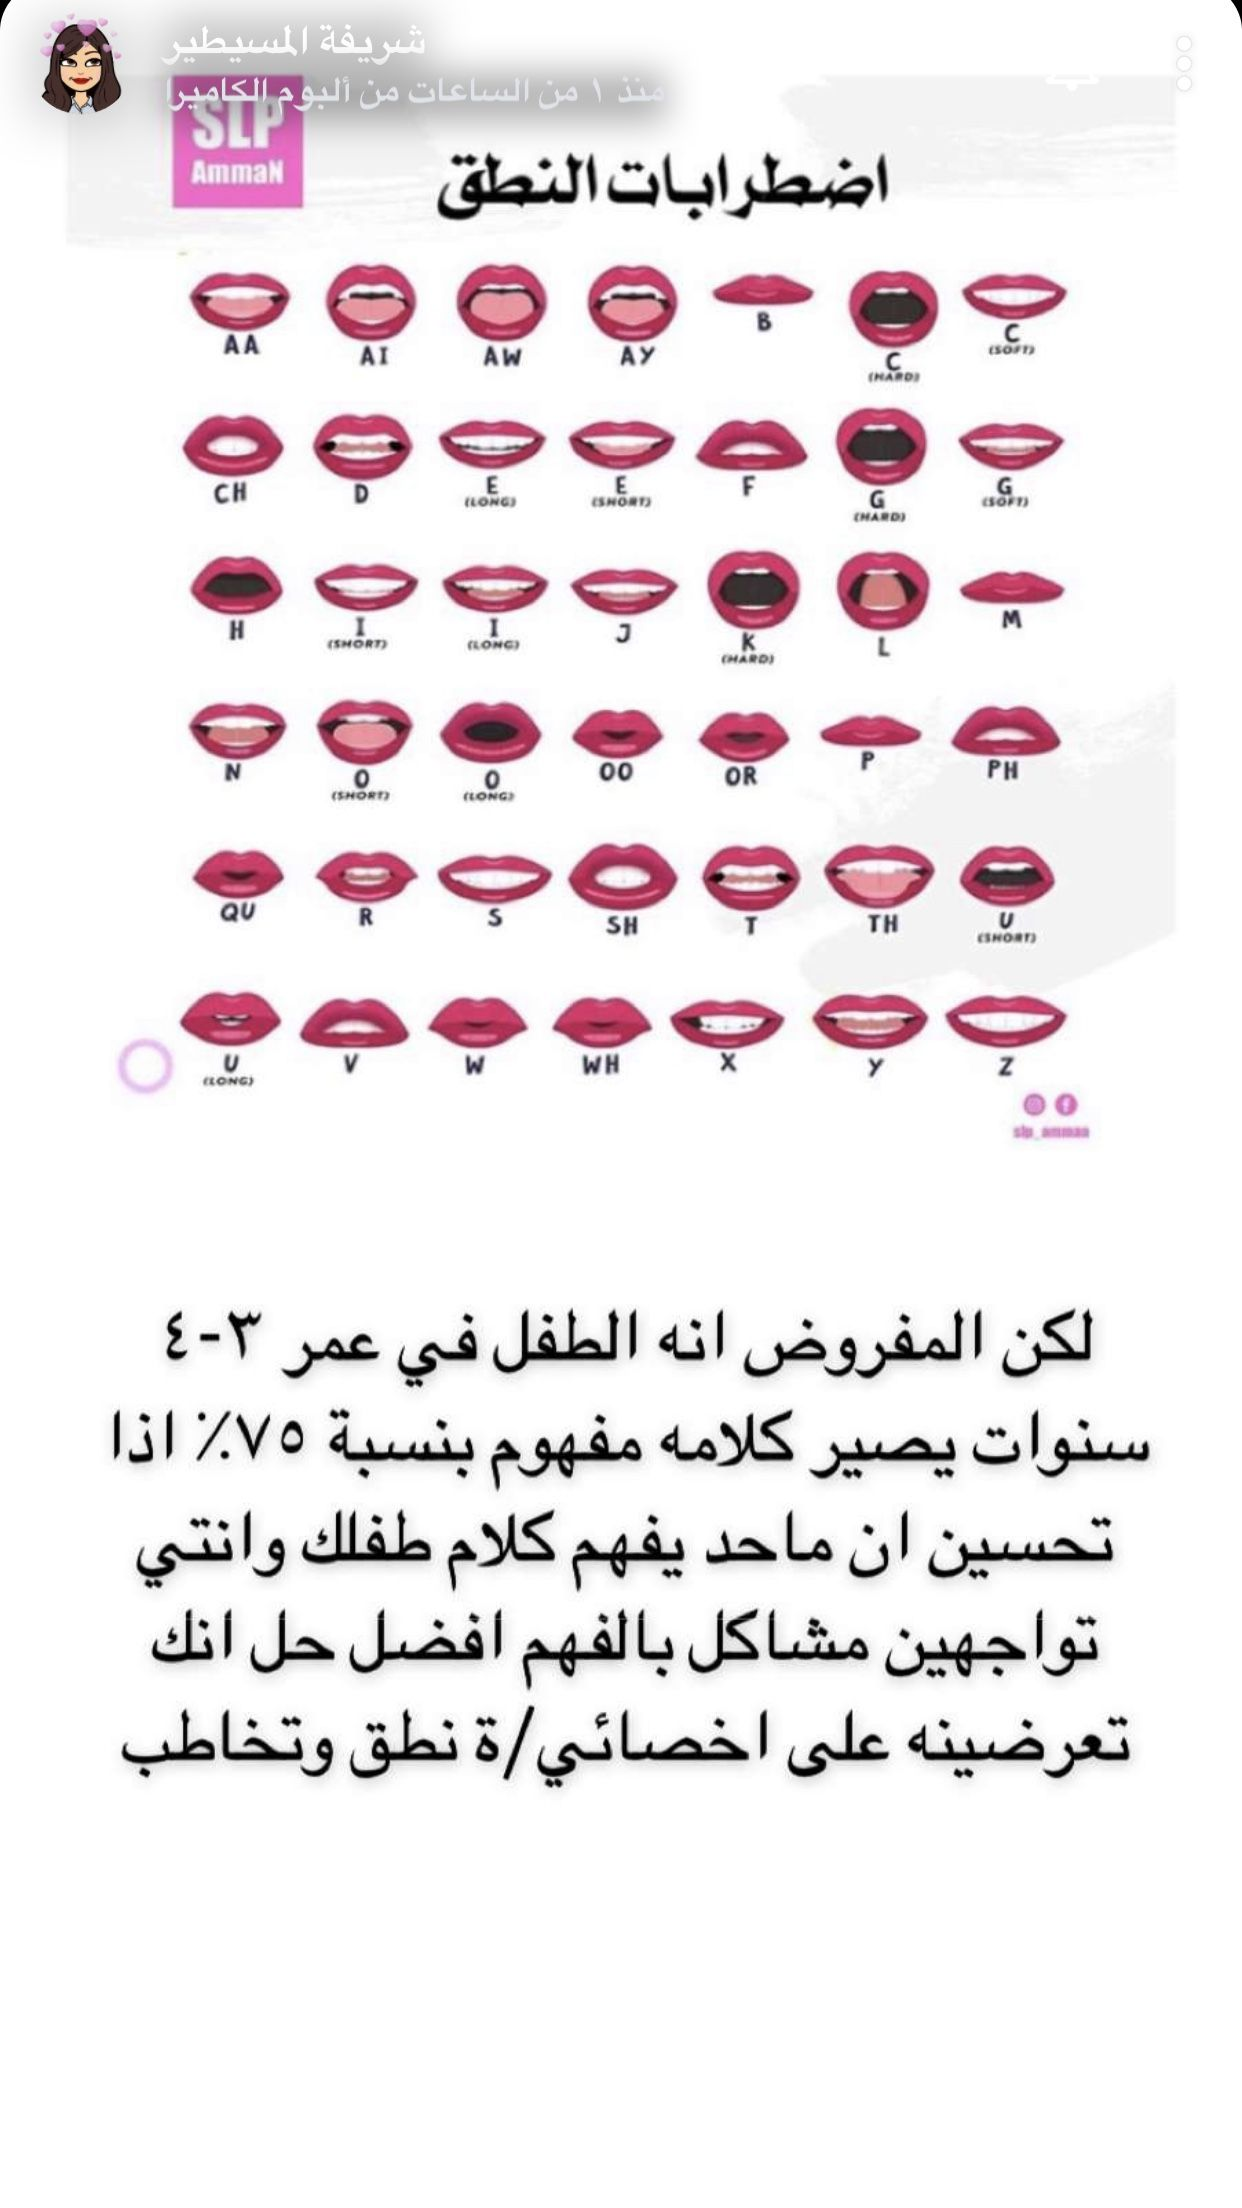 Pin By Najla Ya On تربية In 2020 Word Search Puzzle Words Word Search